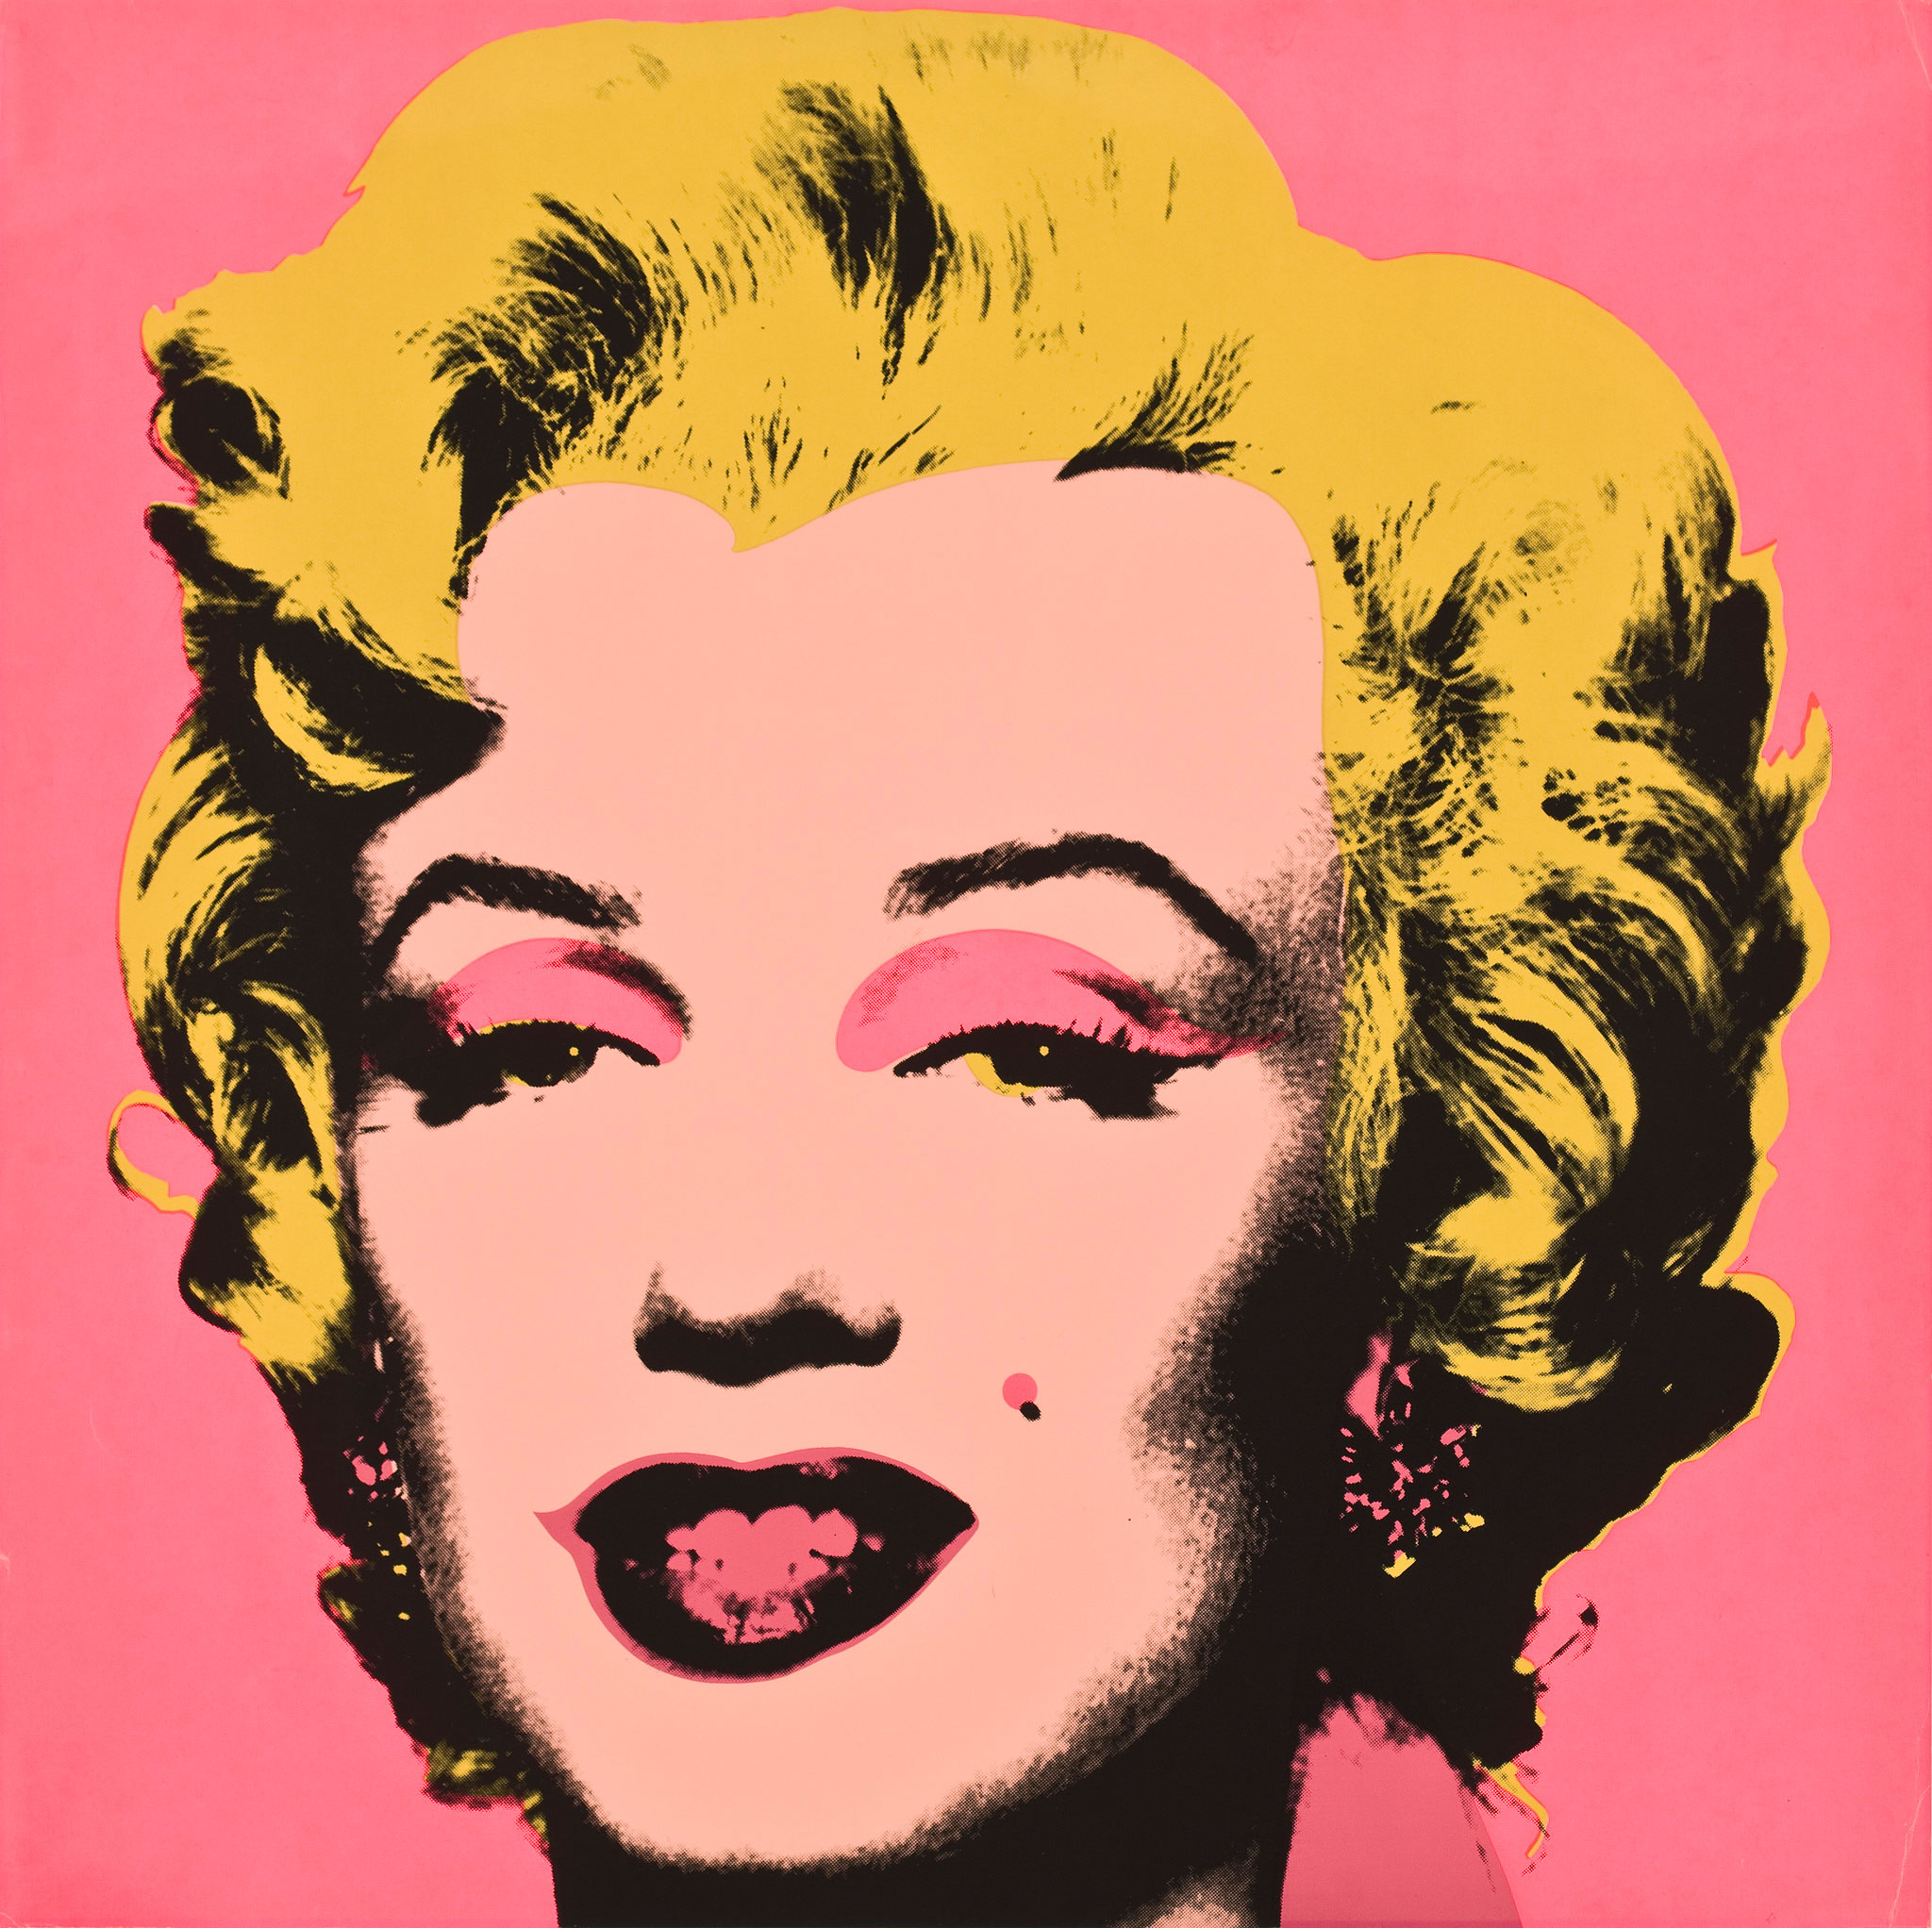 Andy Warhol, Marilyn (Marilyn Monroe), 1967, screenprint on paper, 36 x 36 inches.